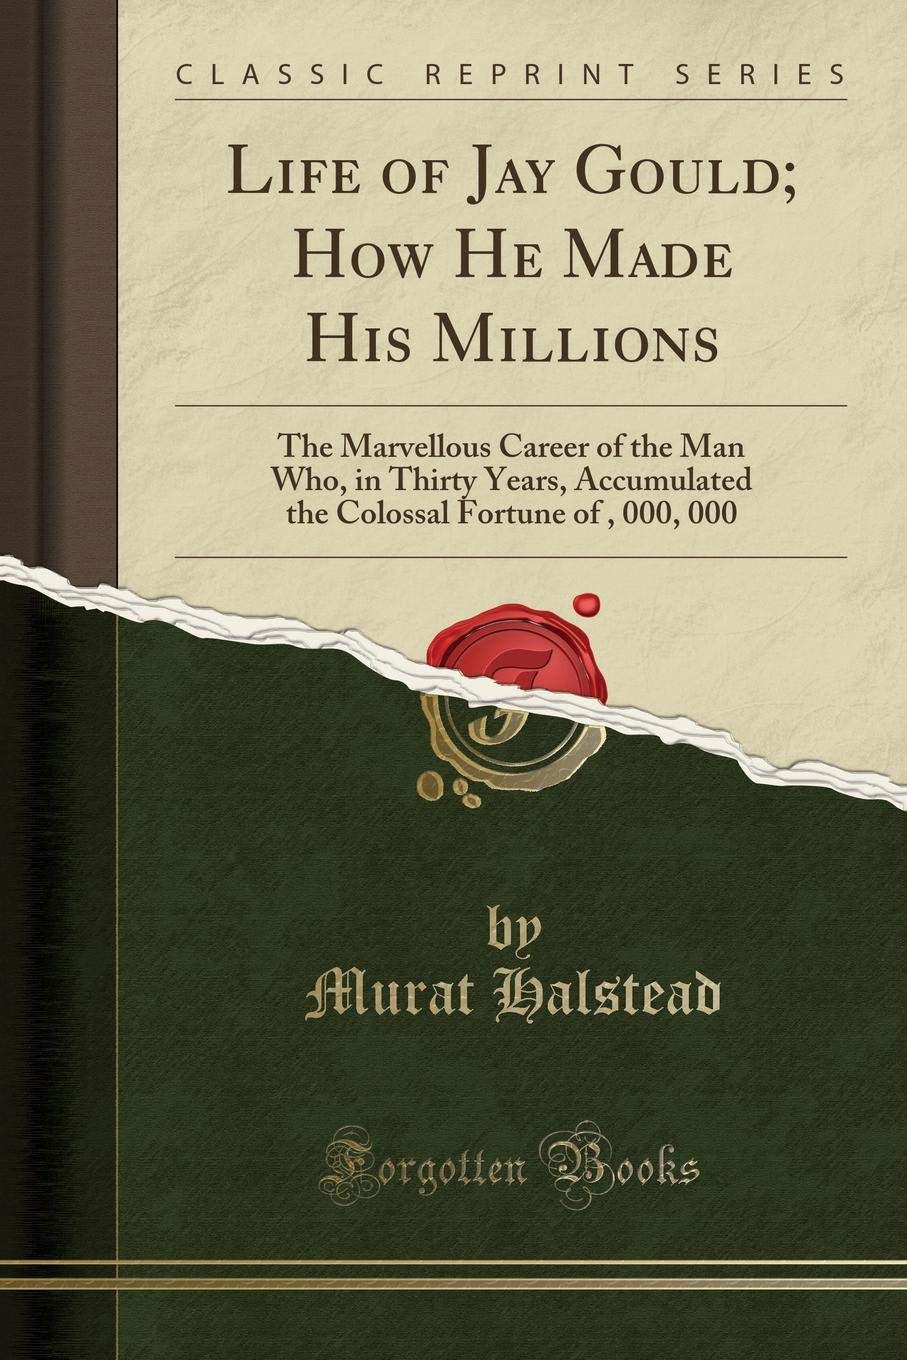 Life of Jay Gould; How He Made His Millions: The Marvellous Career of the Man Who, in Thirty Years, Accumulated the Colossal Fortune of $100, 000, 000 (Classic Reprint) pdf